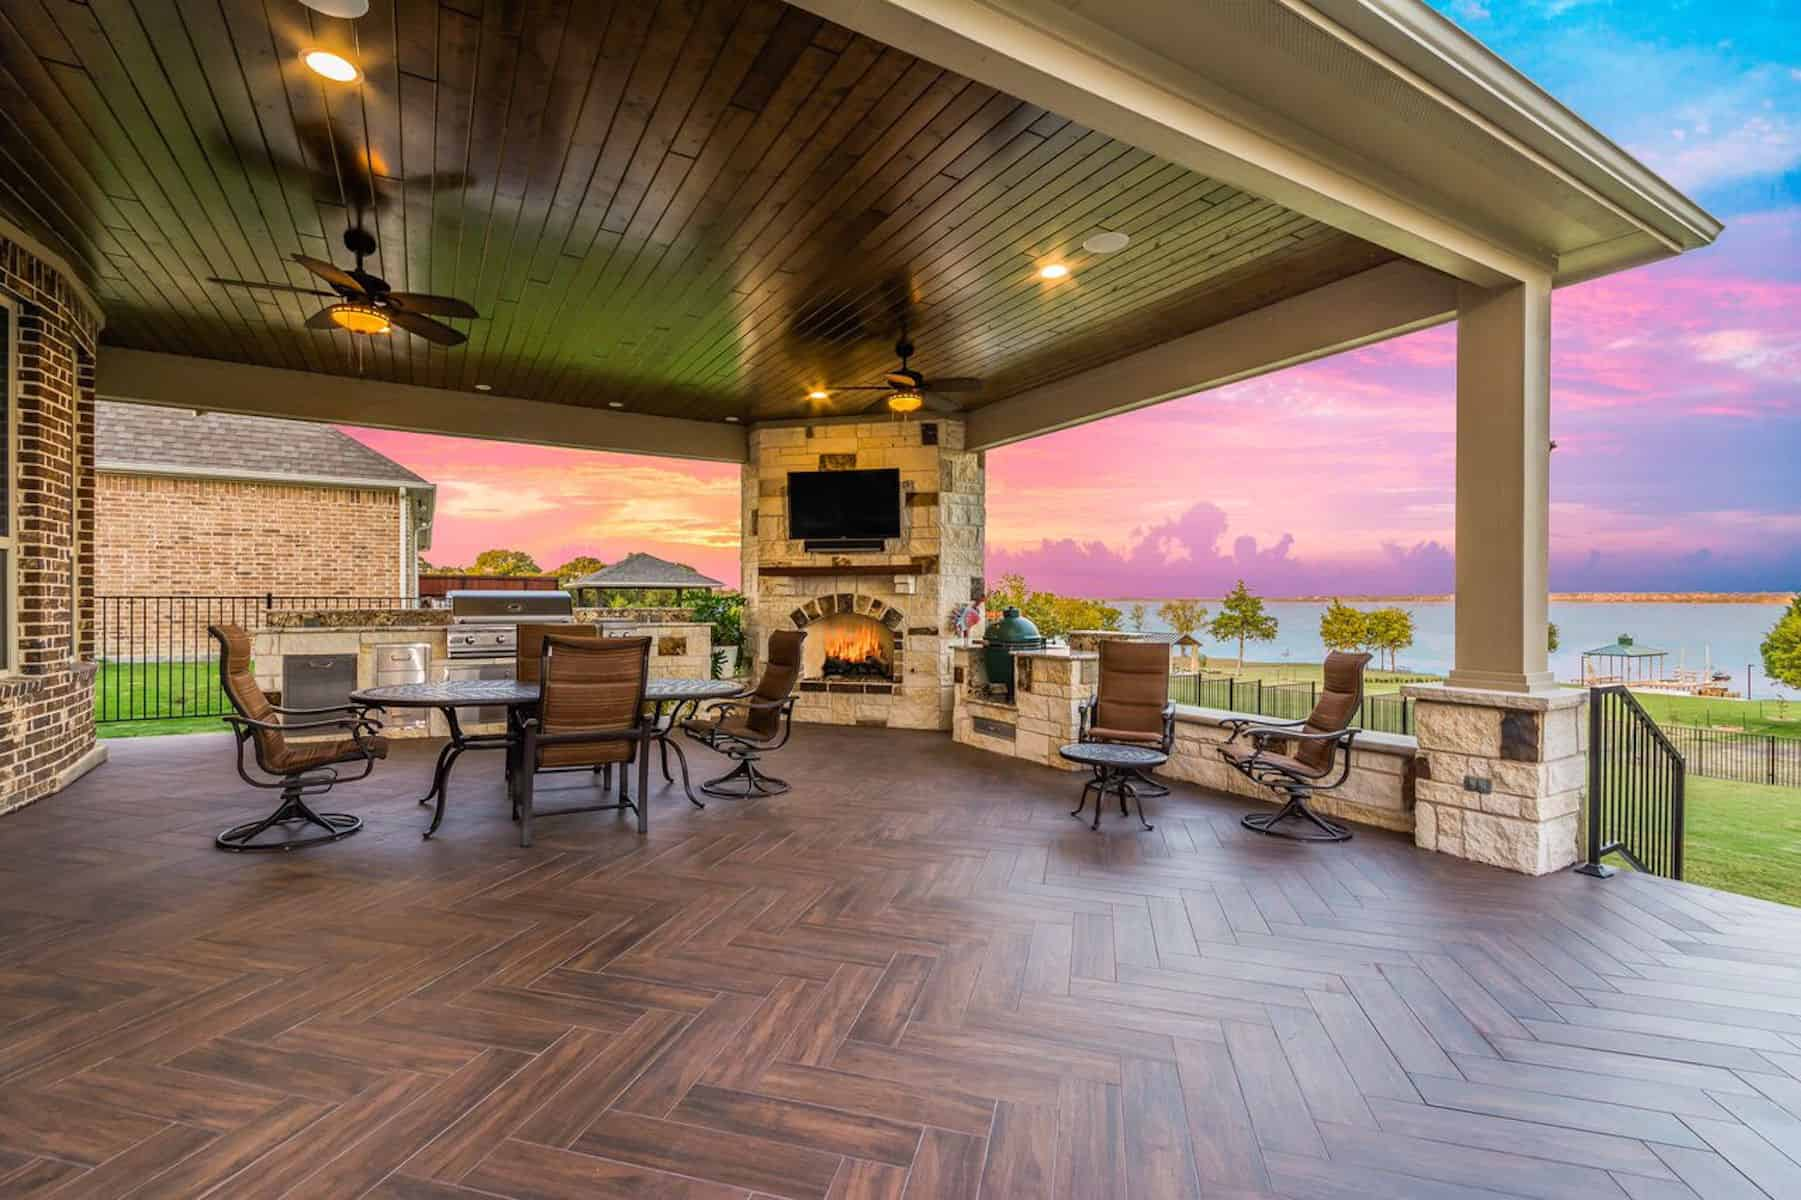 Outdoor Living Blog - Texas Custom Patios on Beautiful Outdoor Living Spaces id=62562